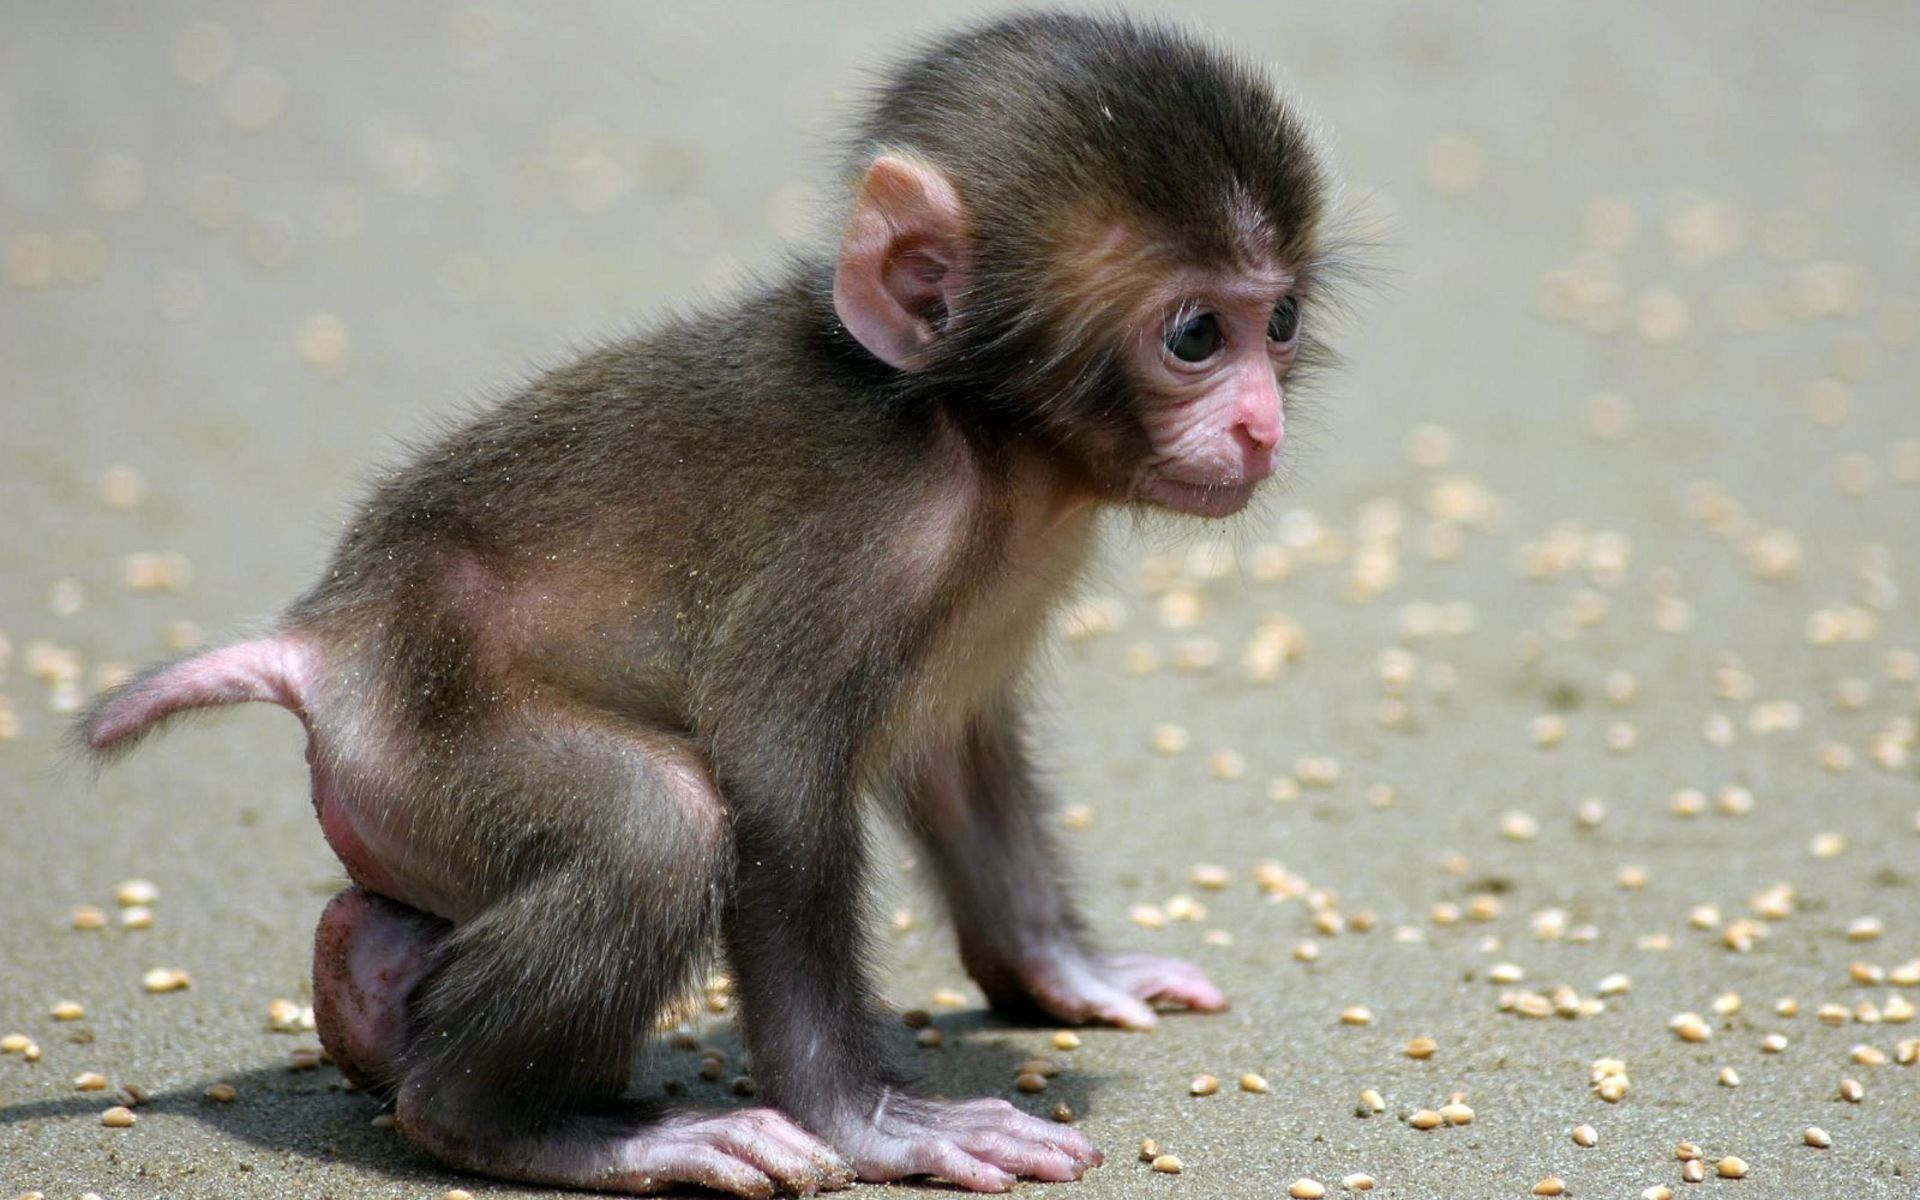 lovely-small-monkey-baby-picture-download-free-hd-wallpapers-of